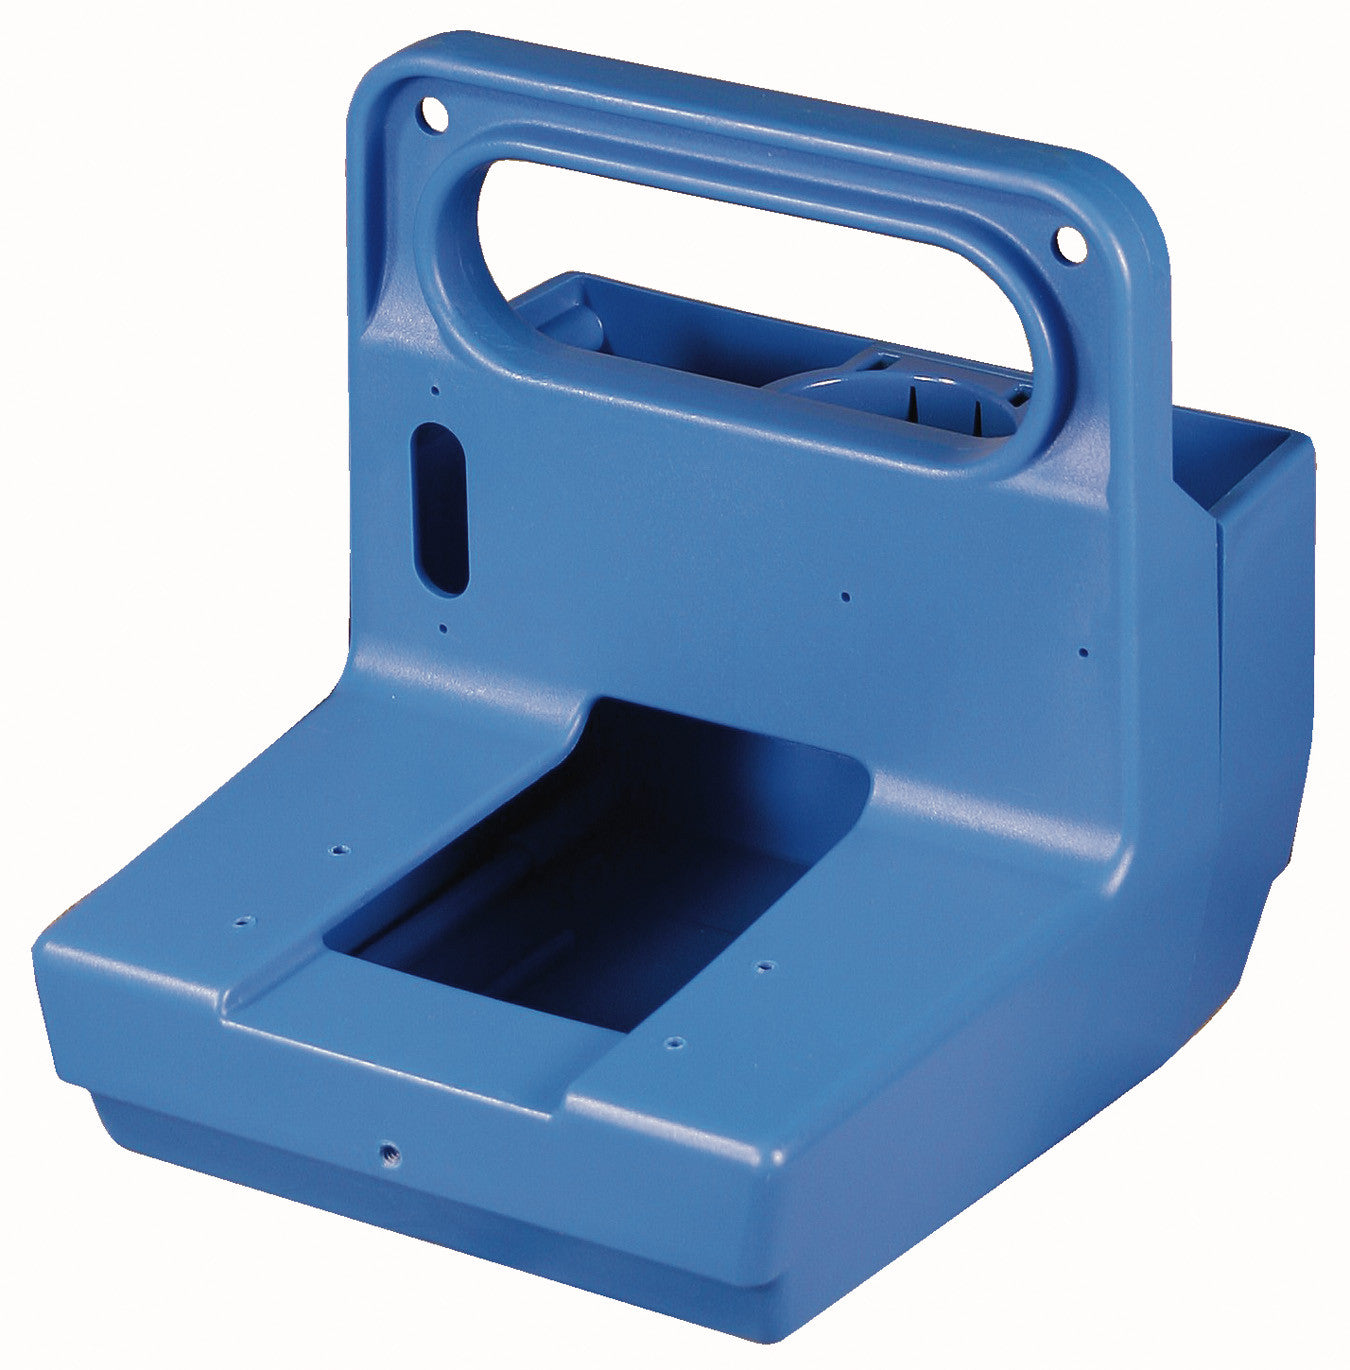 Vexilar Genz Blue Box Carrying Case